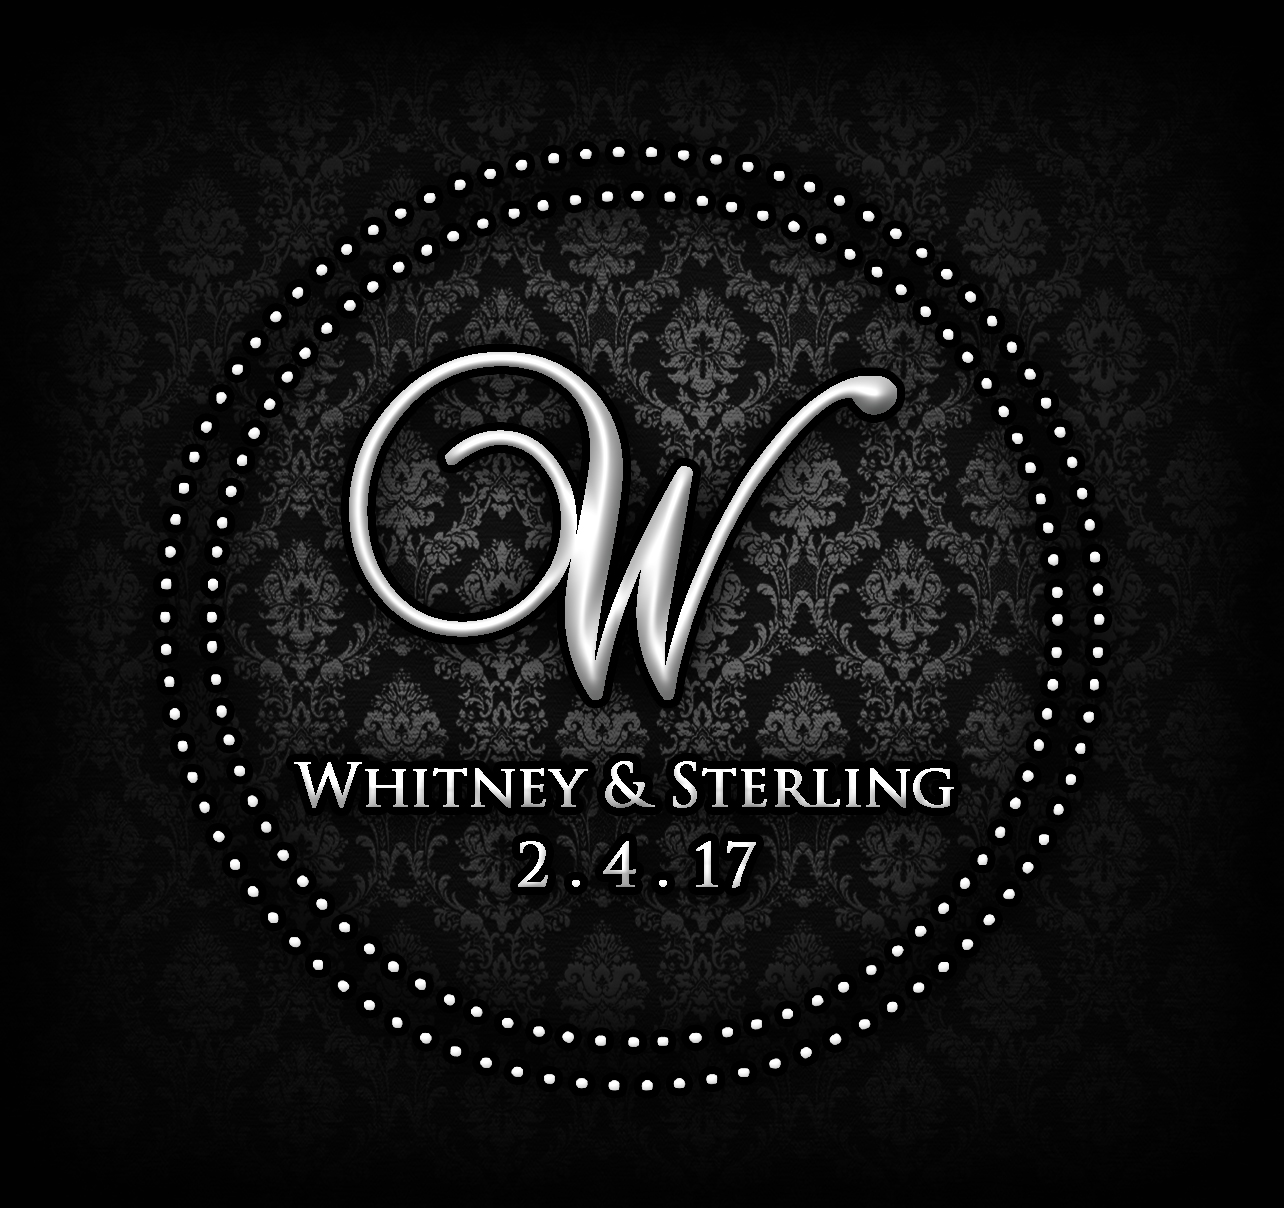 WHITNEYandSTERLING4monogram.jpg